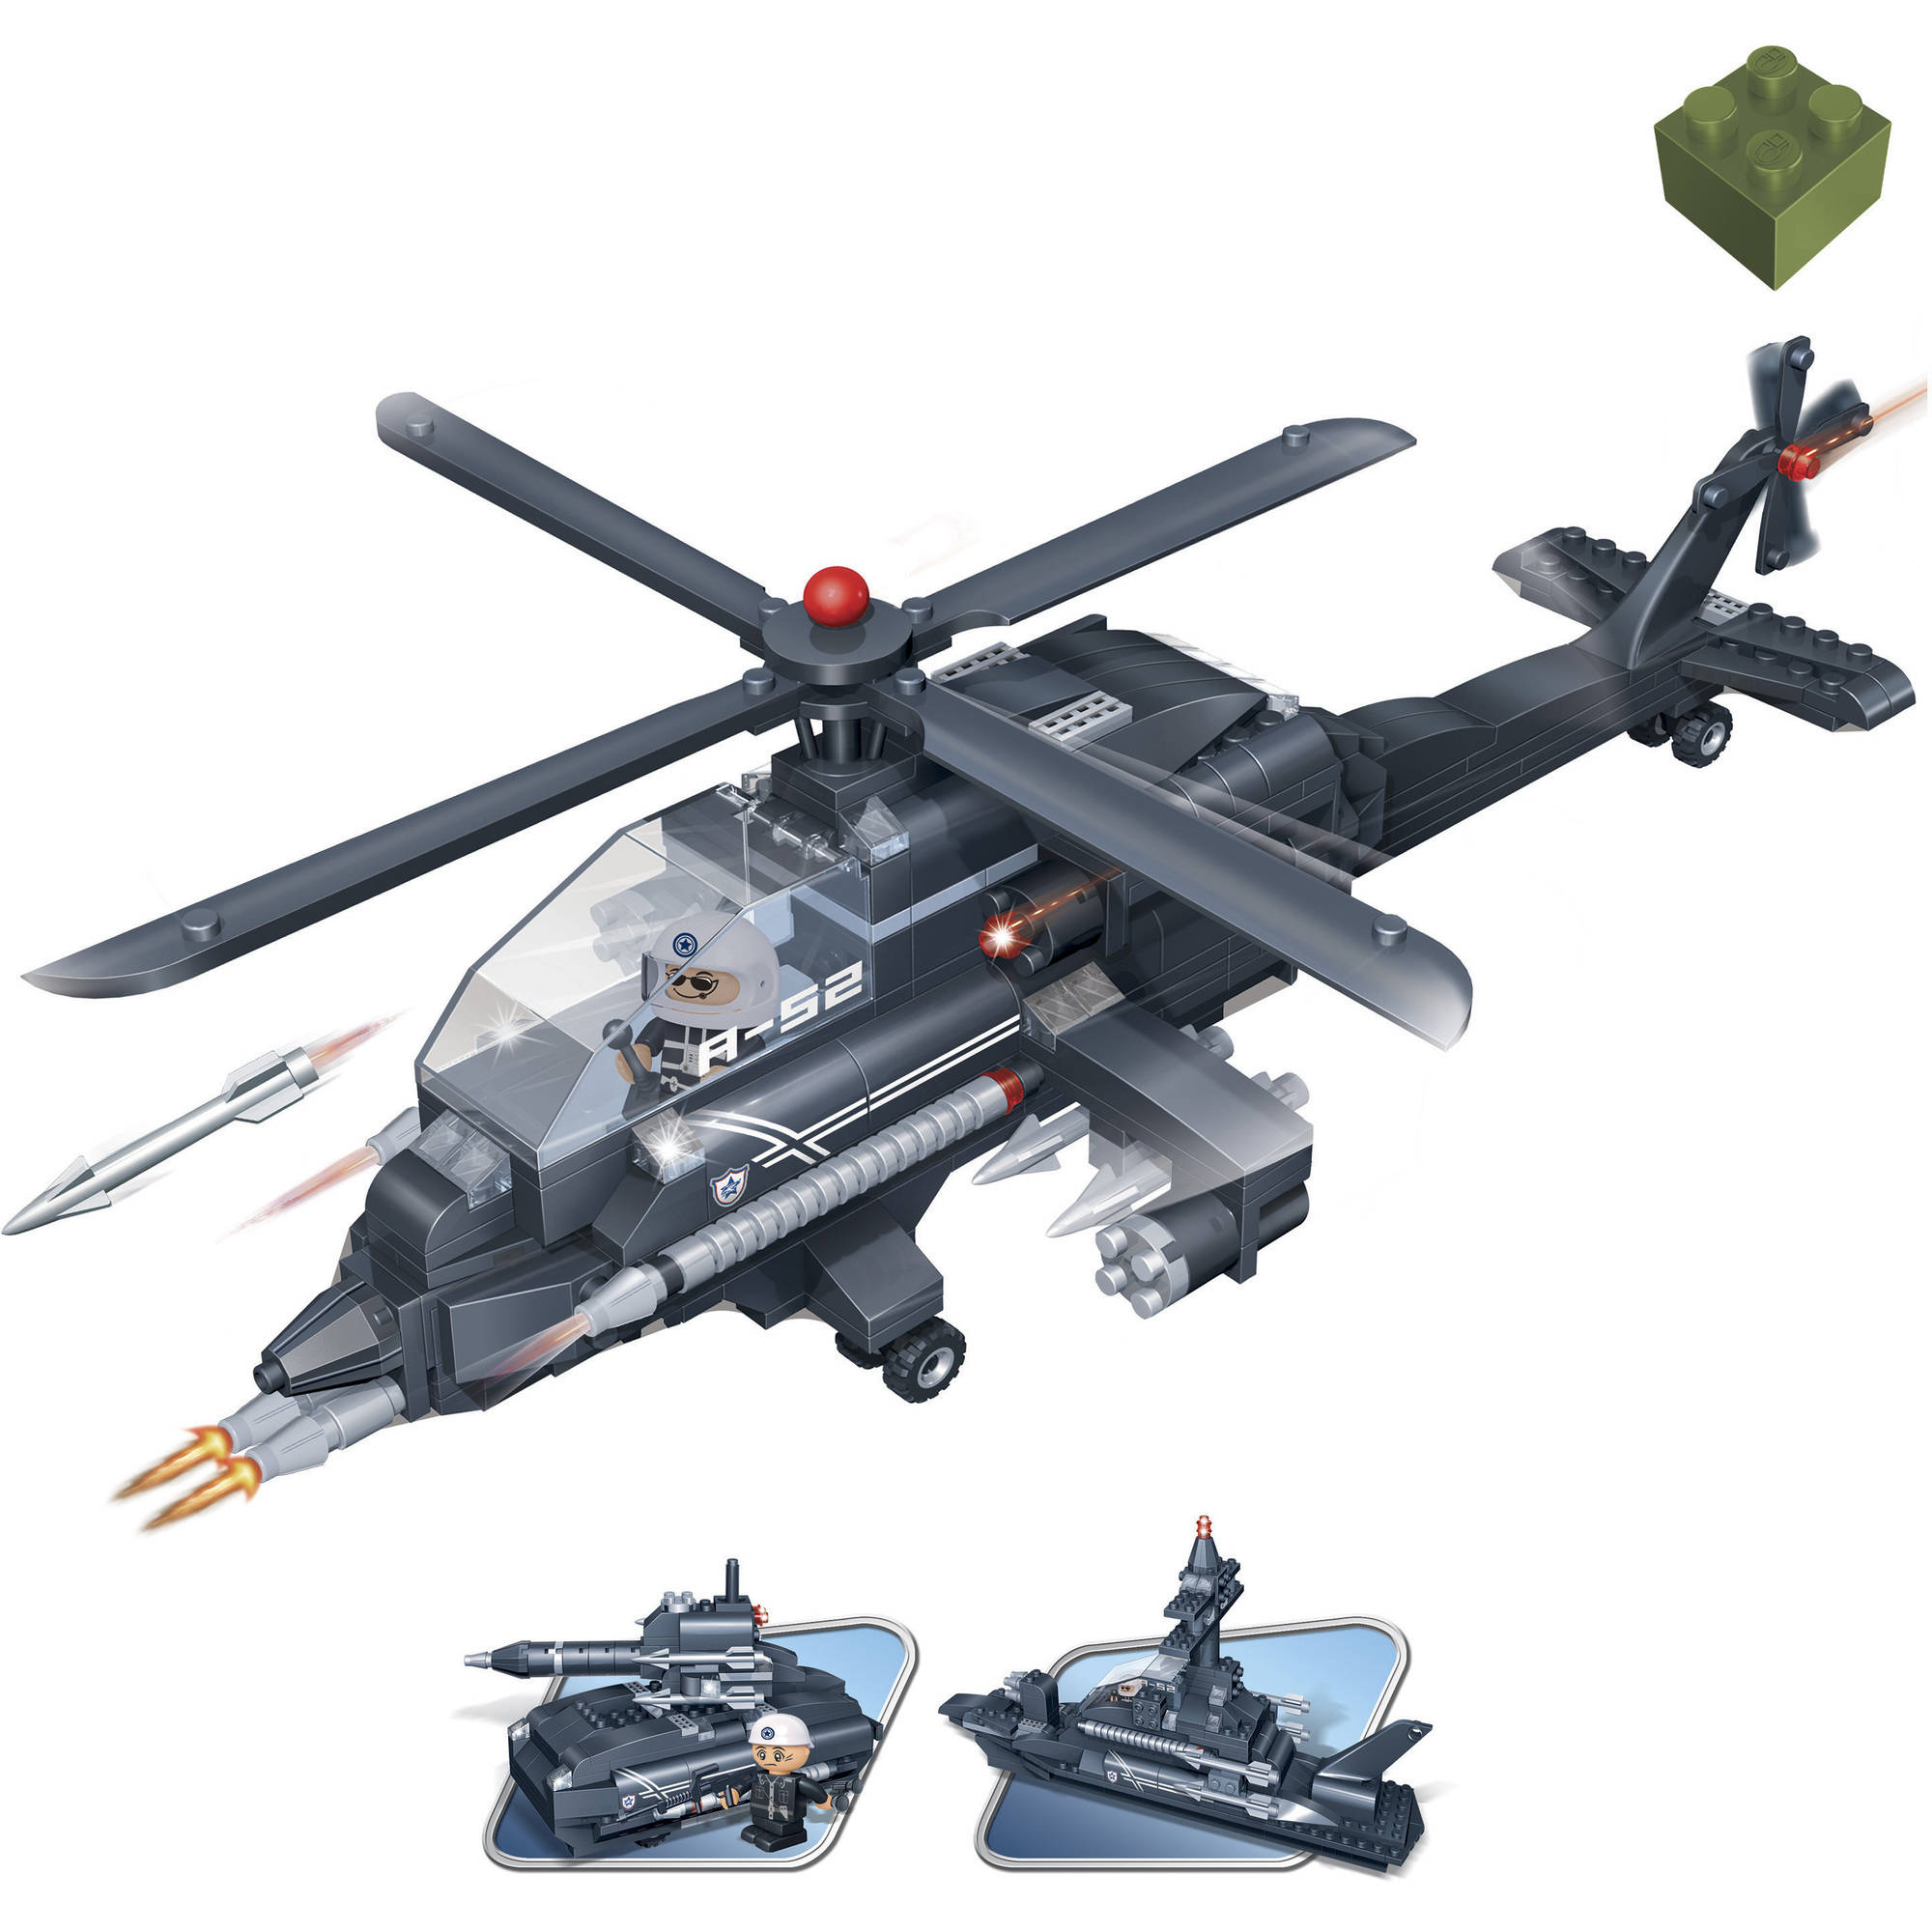 BanBao 3-in-1 Helicopter 295-Piece Building Set